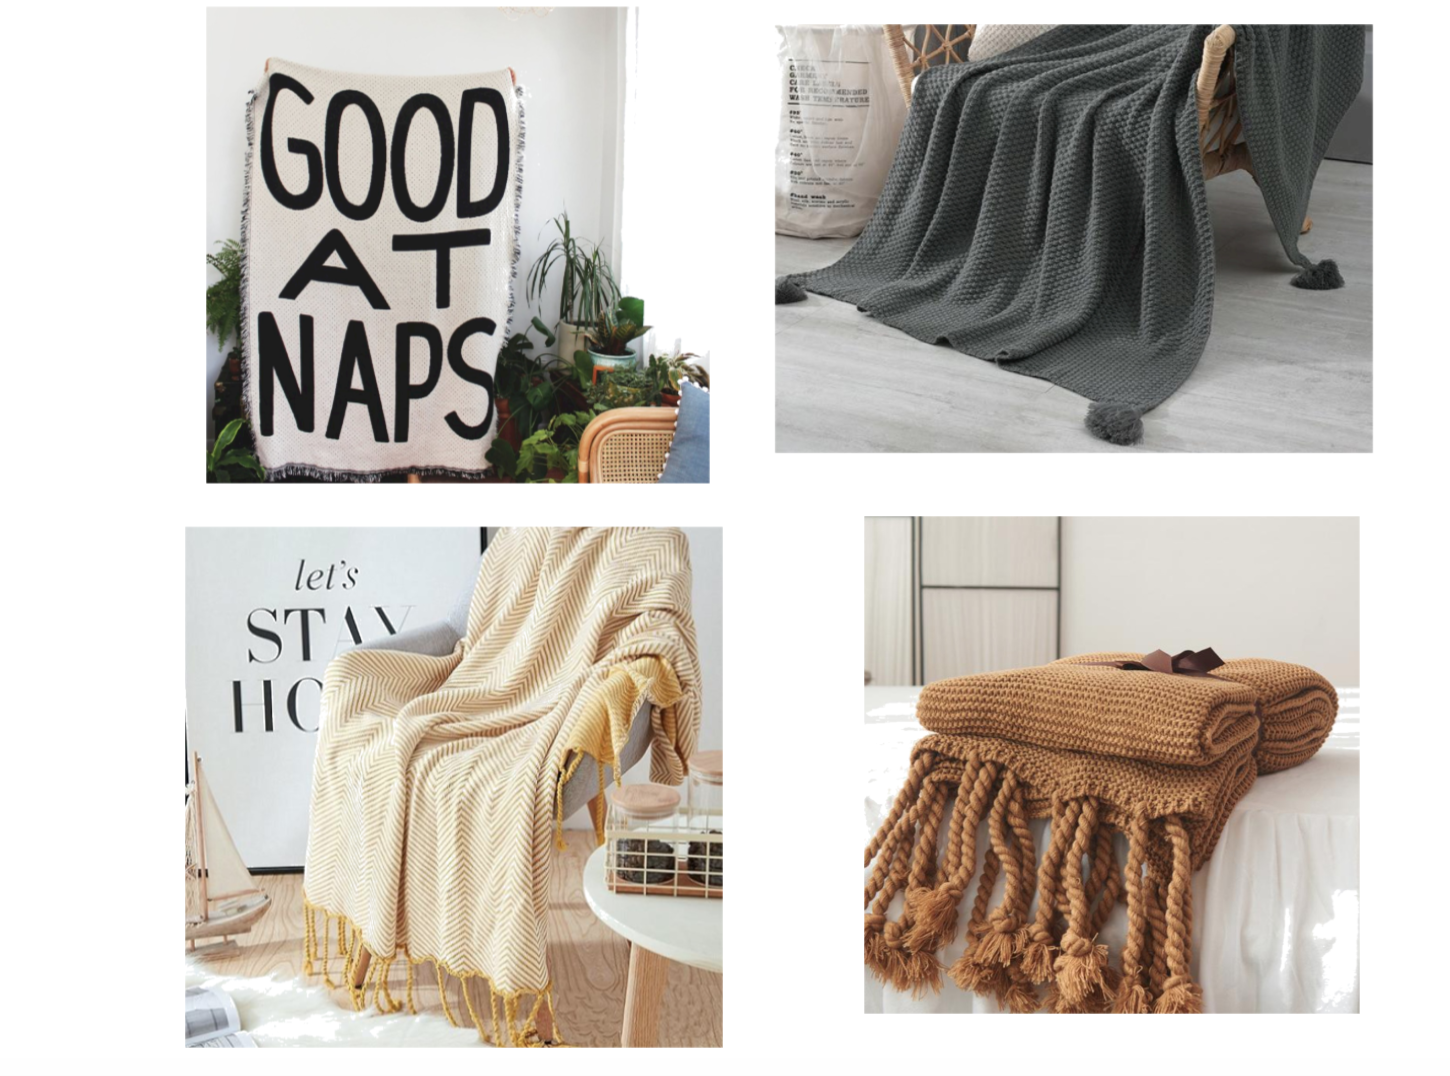 I love the spice color throw shown here.